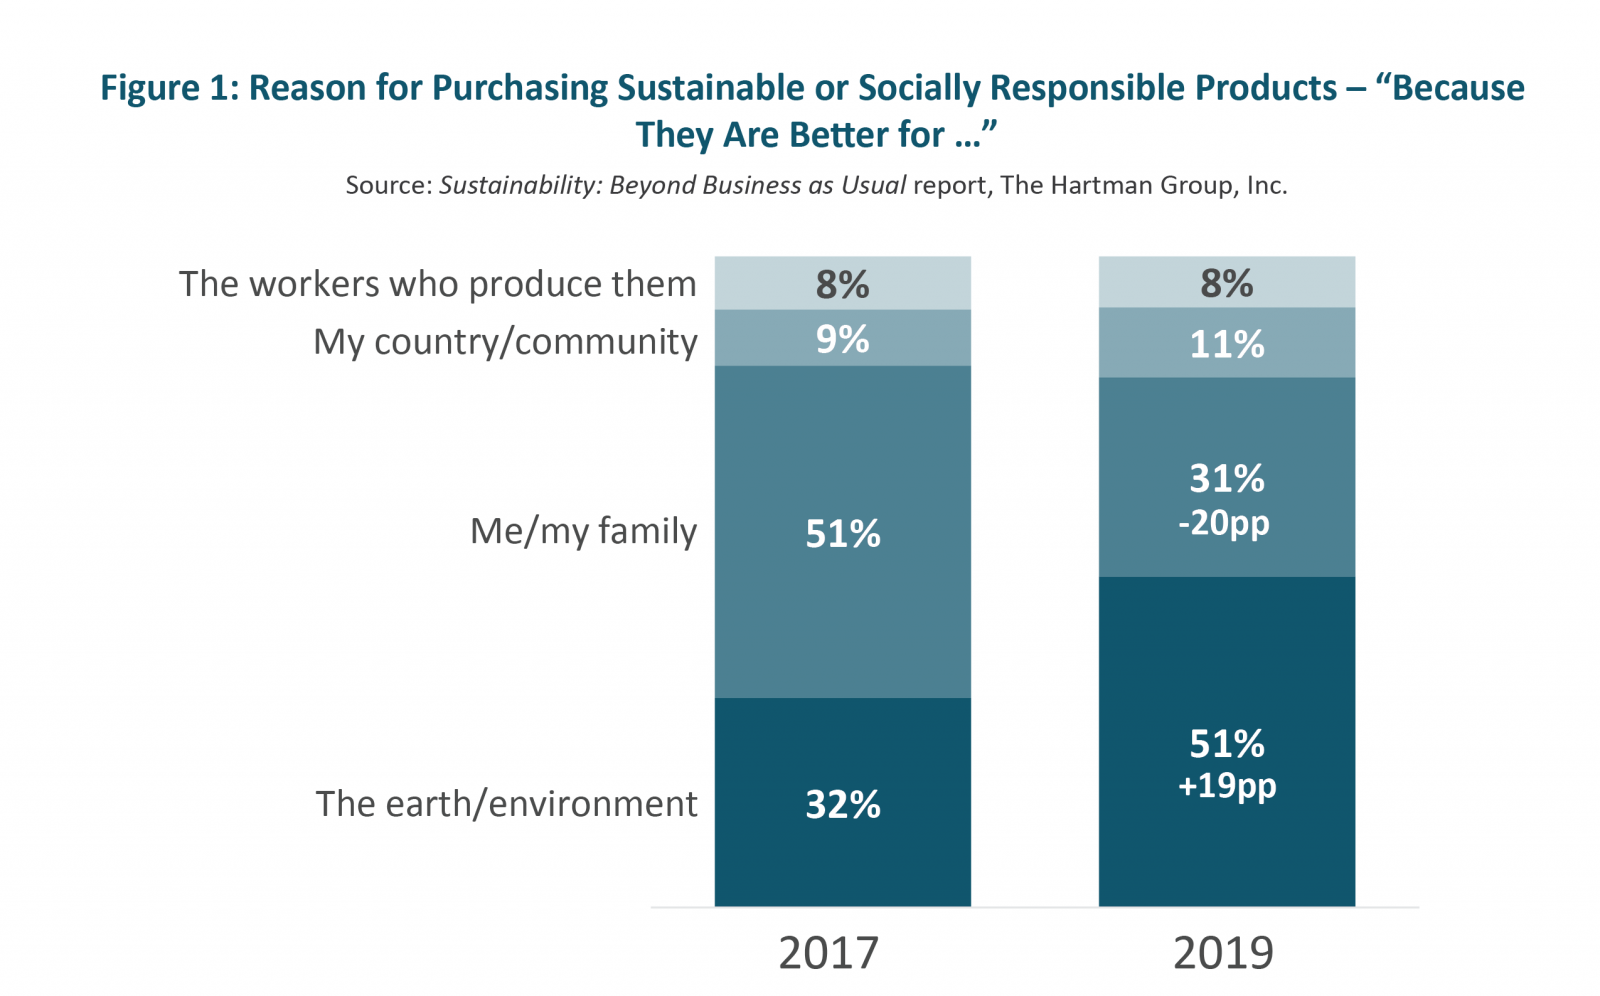 Reason for Purchasing Sustainable or Socially Responsible Products